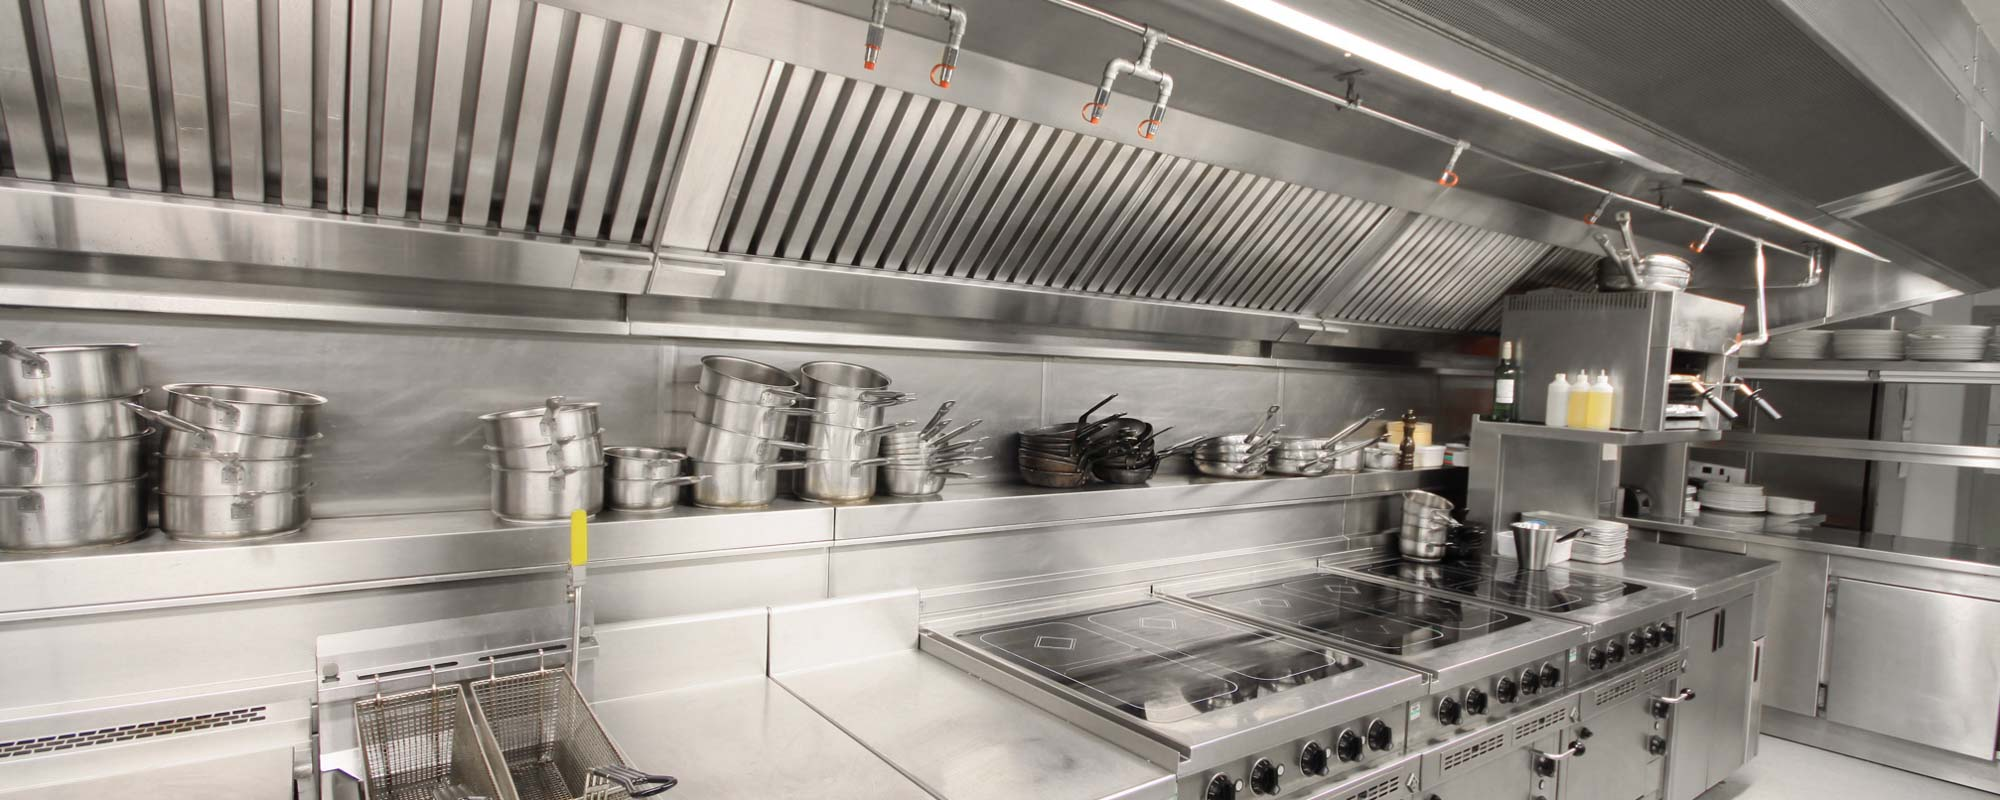 Kitchen Exhaust Hood U0026 Ducting Cleaning Specialist In Singapore Since 1997